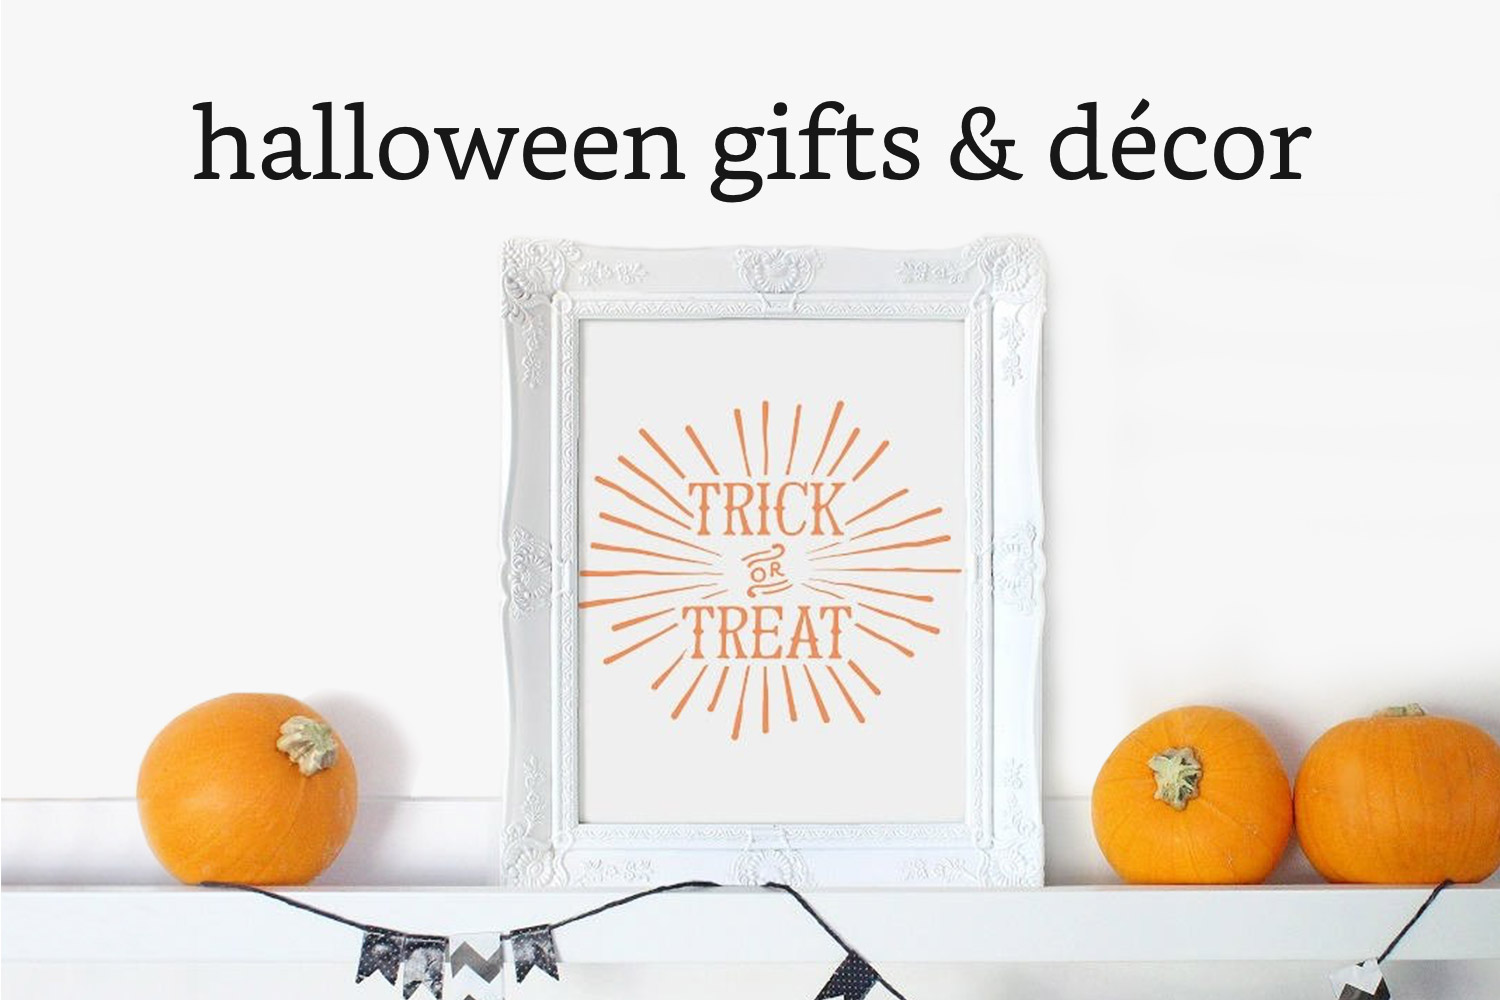 Handmade Halloween Gifts and Decorations